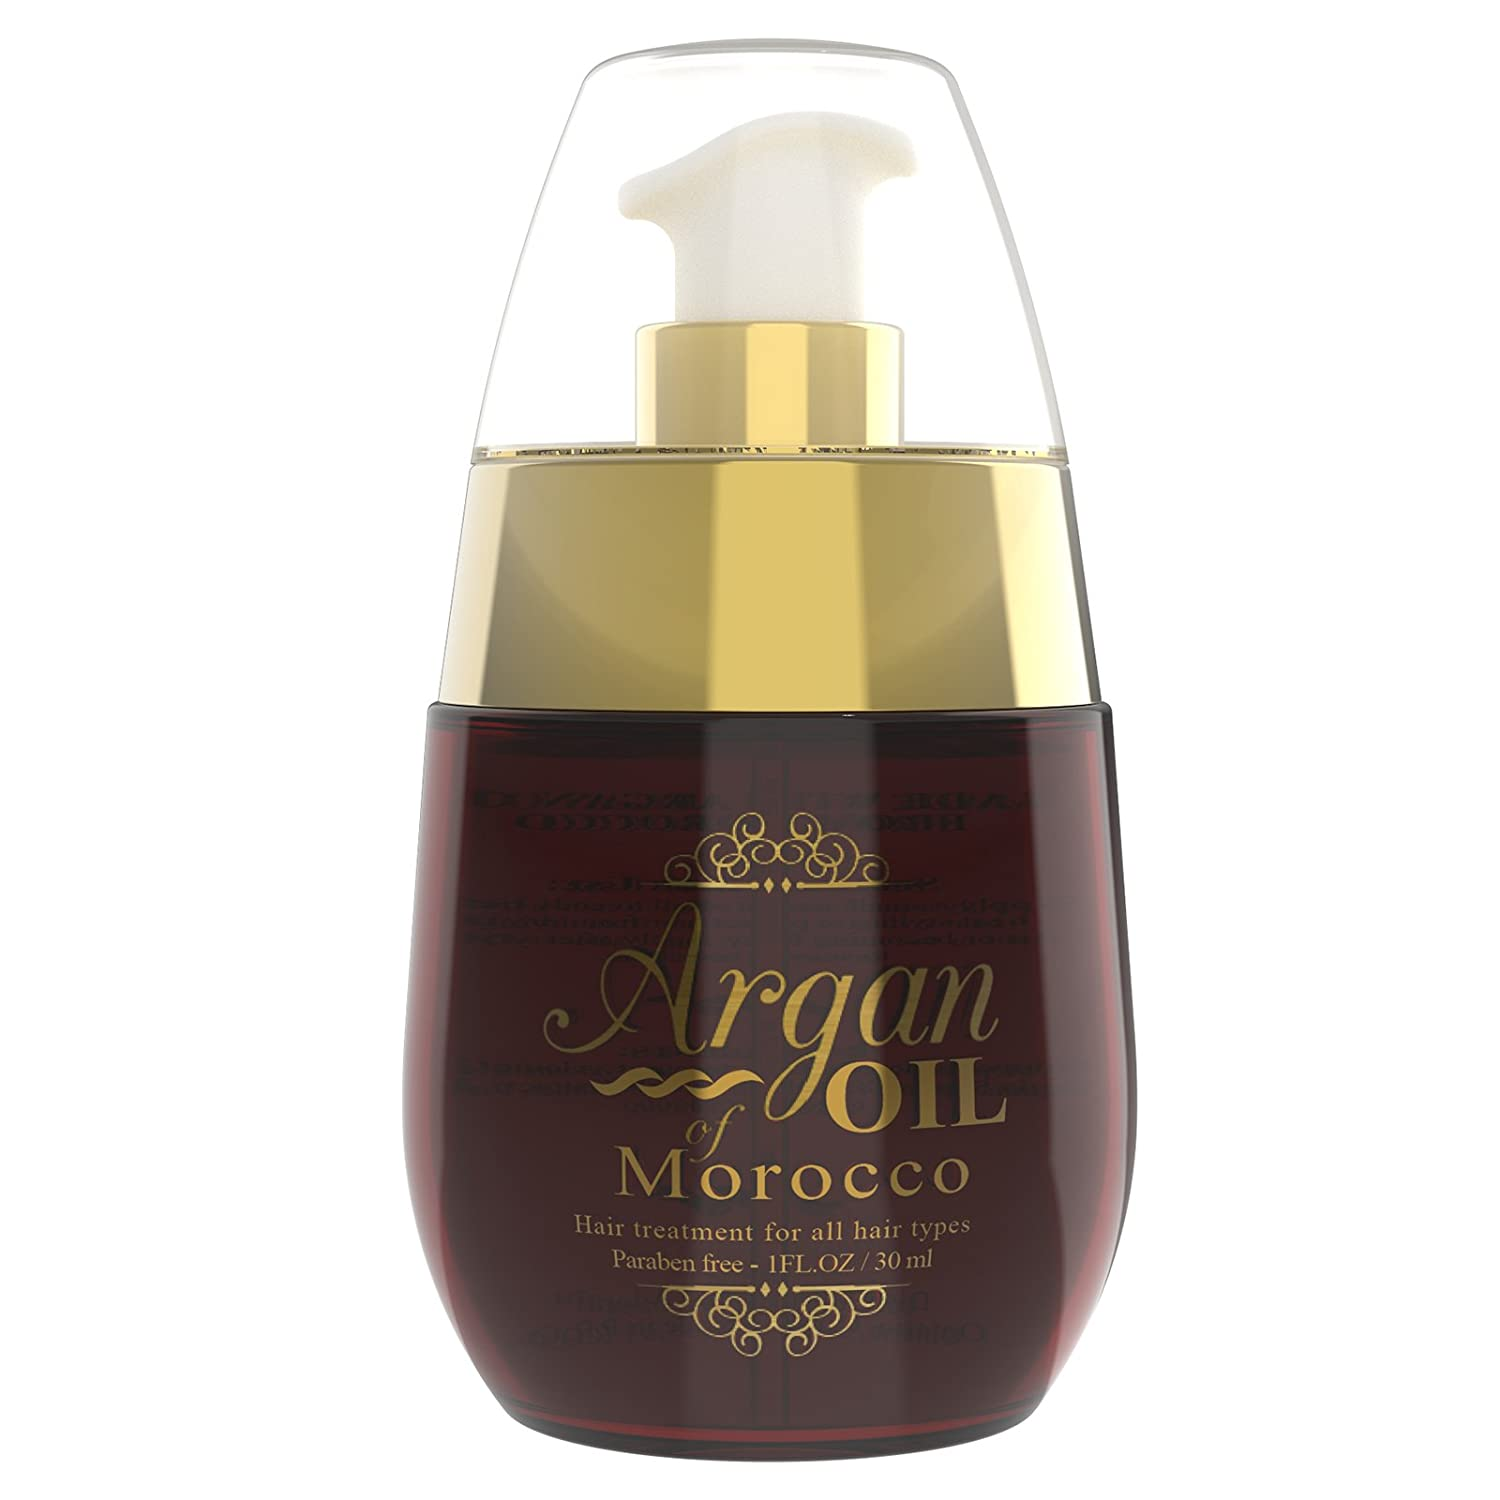 Moroccan Argan Oil with Castor oil & TEA Tree Oils Silkiest Healthiest Hair Yet. Best Natural Treatment Oil to Strengthen, Condition, Thermal Protect Dry Brittle Hair Instantly!